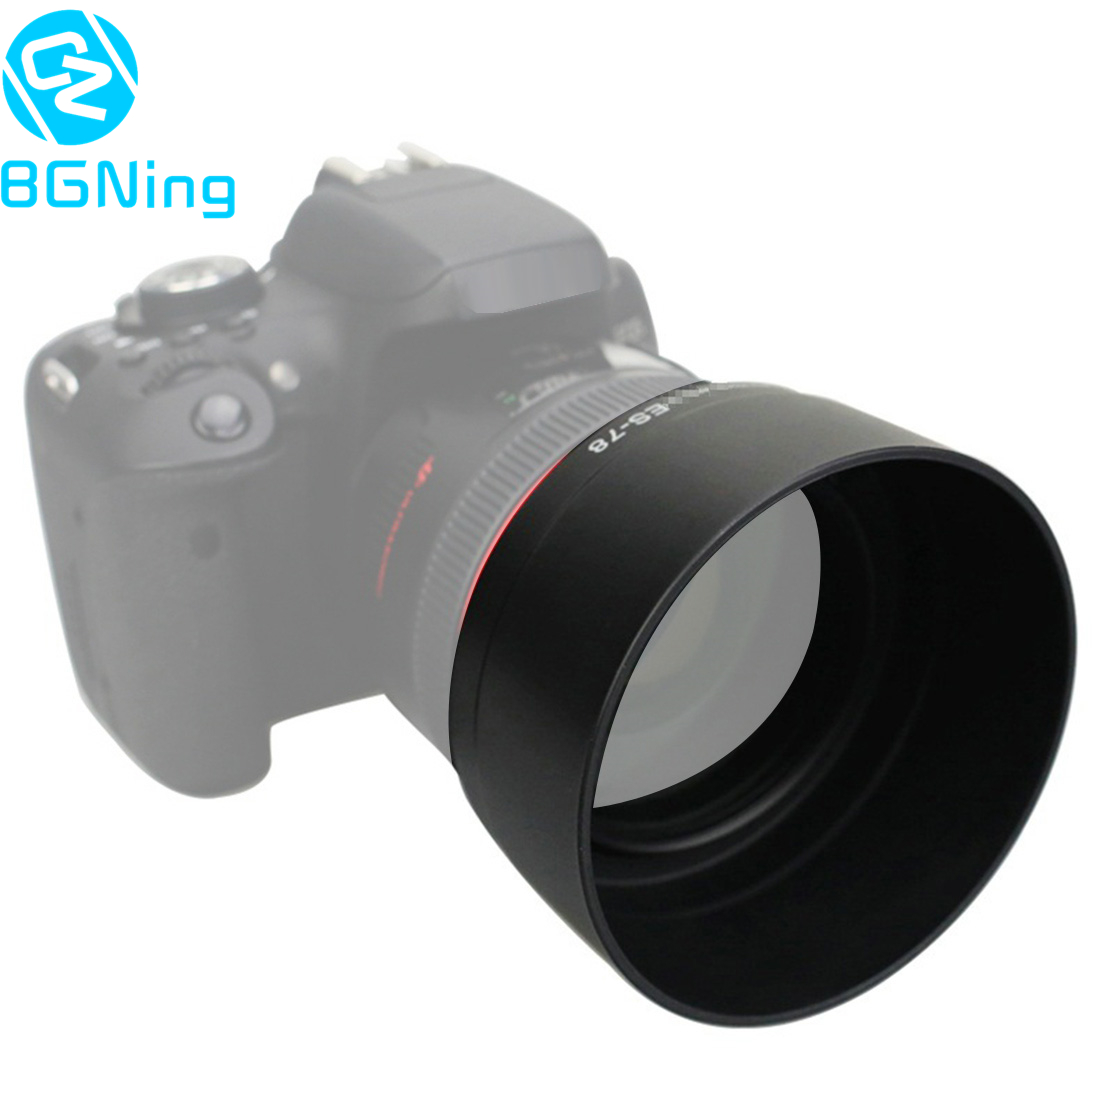 BGNing <font><b>Lens</b></font> Hood Replace ES-78 for Canon EF 50mm f/1.2L USM / <font><b>50</b></font> <font><b>mm</b></font> F1.2L USM <font><b>Lenses</b></font> 72mm ES78 Reversible Camera Shade Protector image